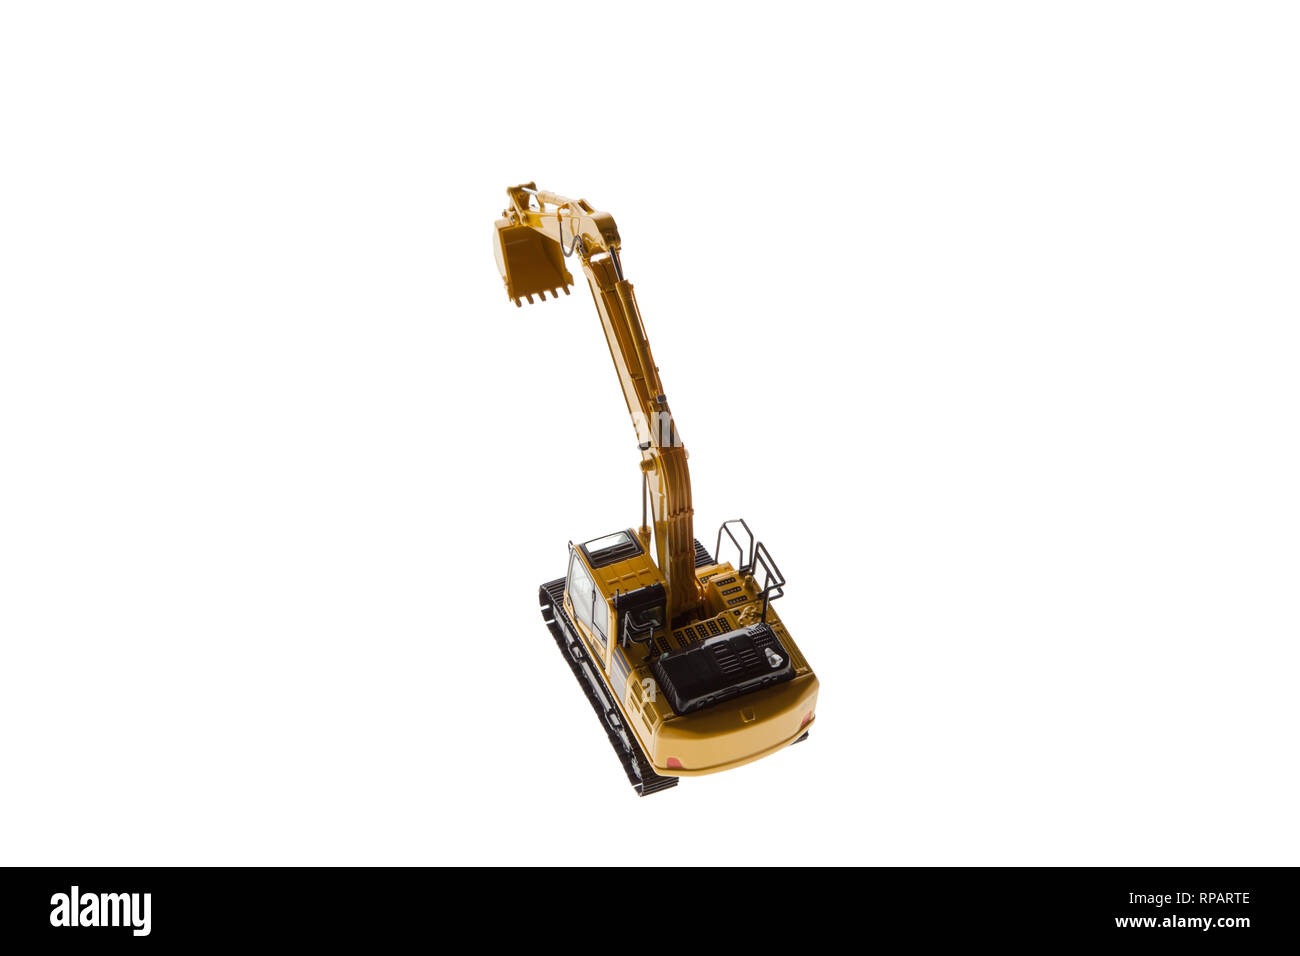 Excavator Crane Back View From Top - Stock Image